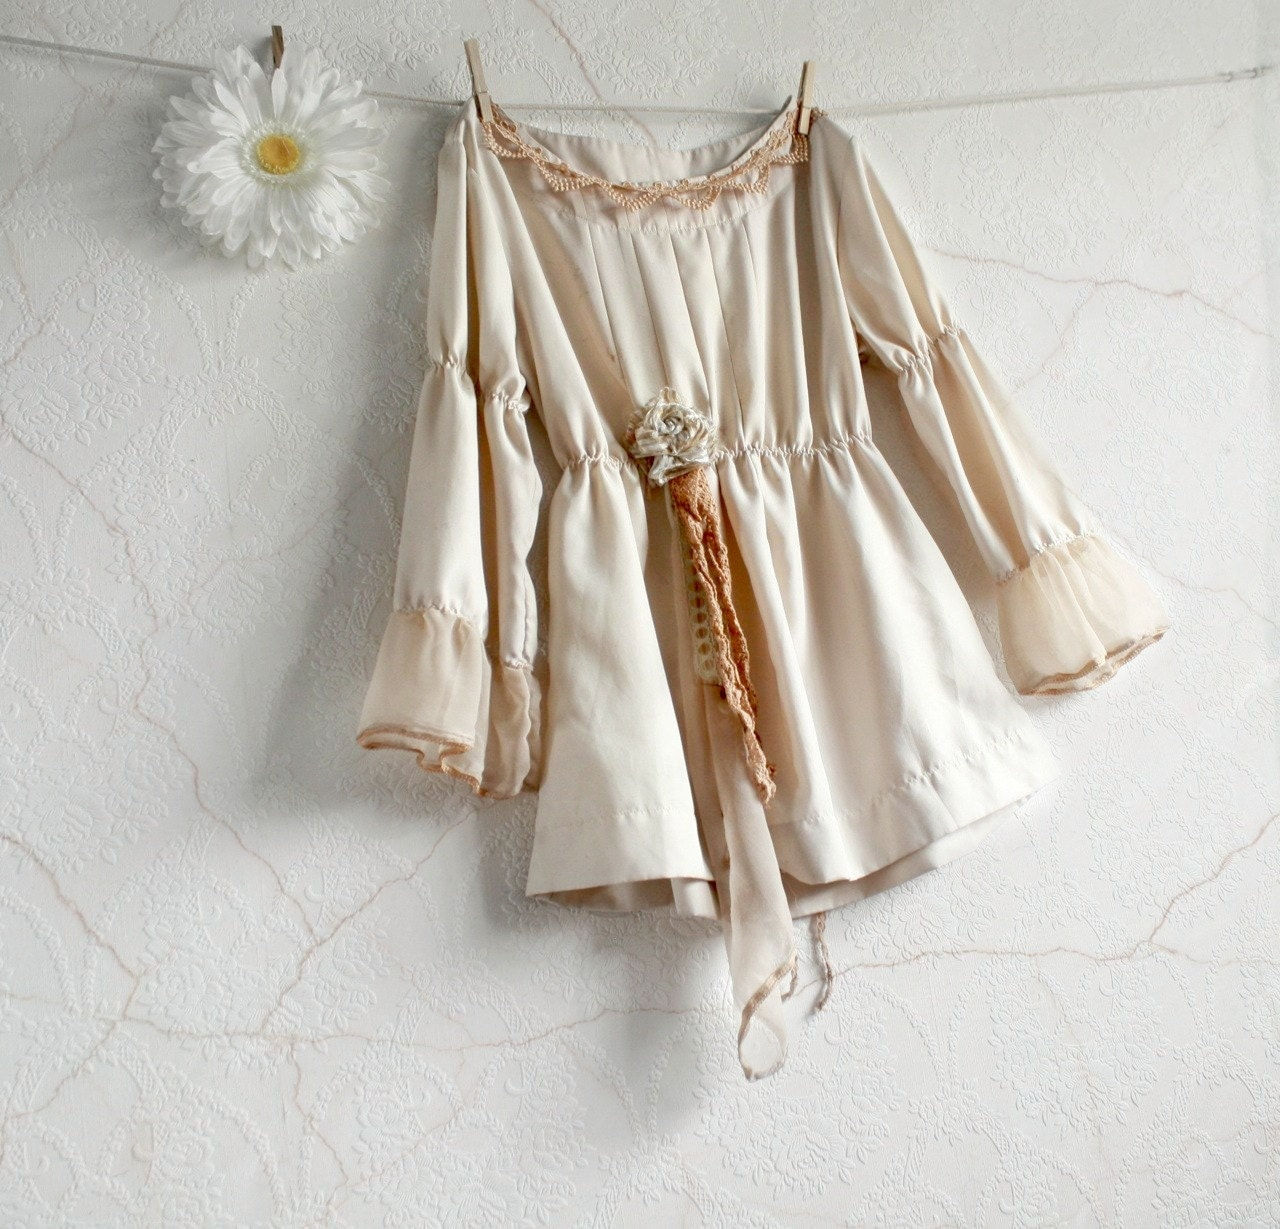 Cream blouse shabby chic clothing women 39 s by brokenghostclothing - Shabby chic outfit ideas ...